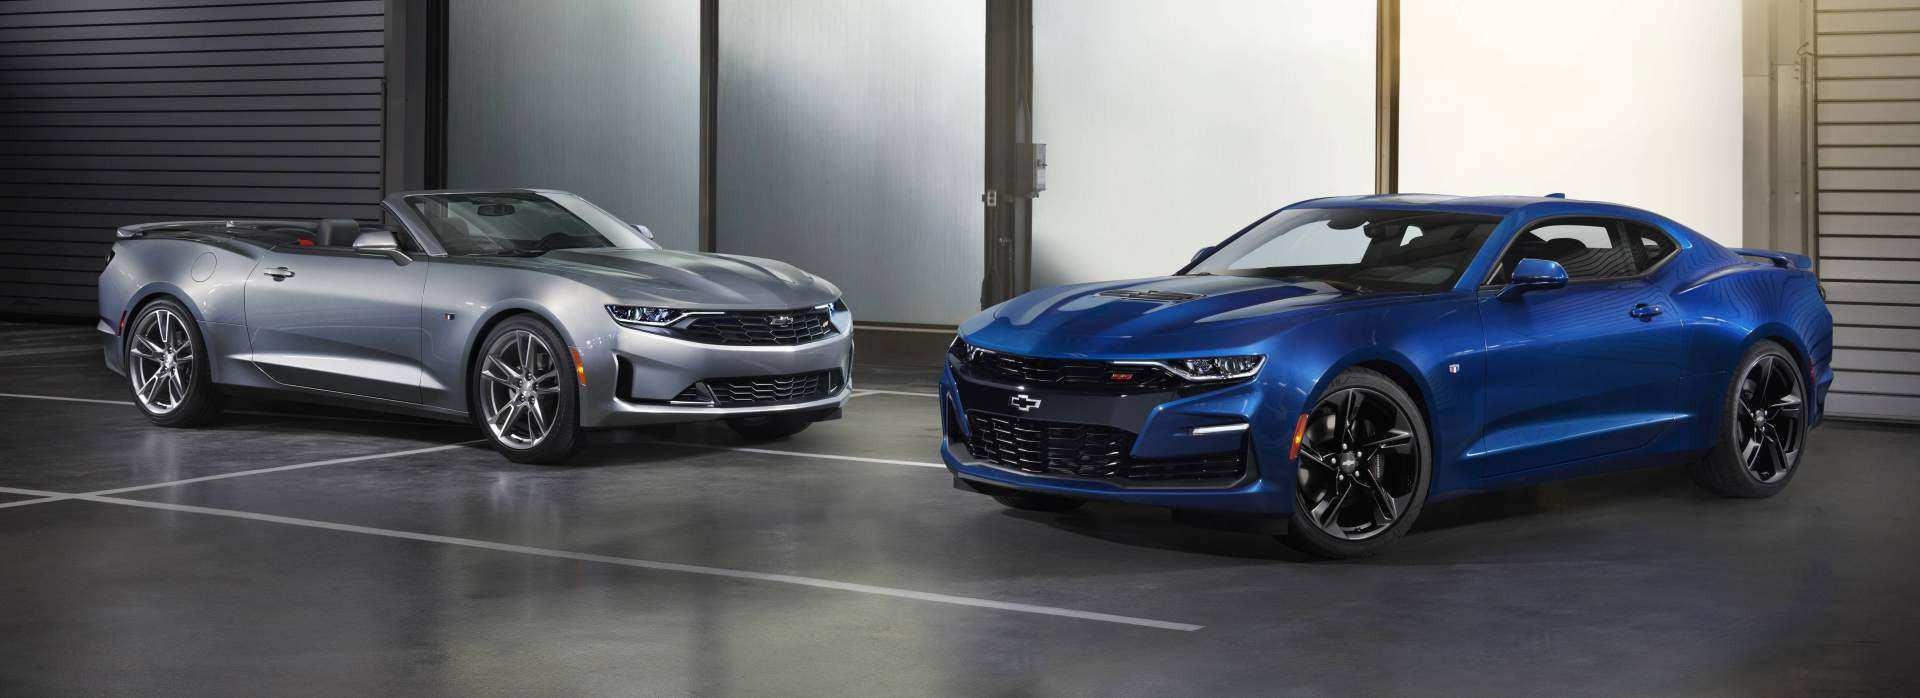 32 Best 2020 The All Chevy Camaro Release Date